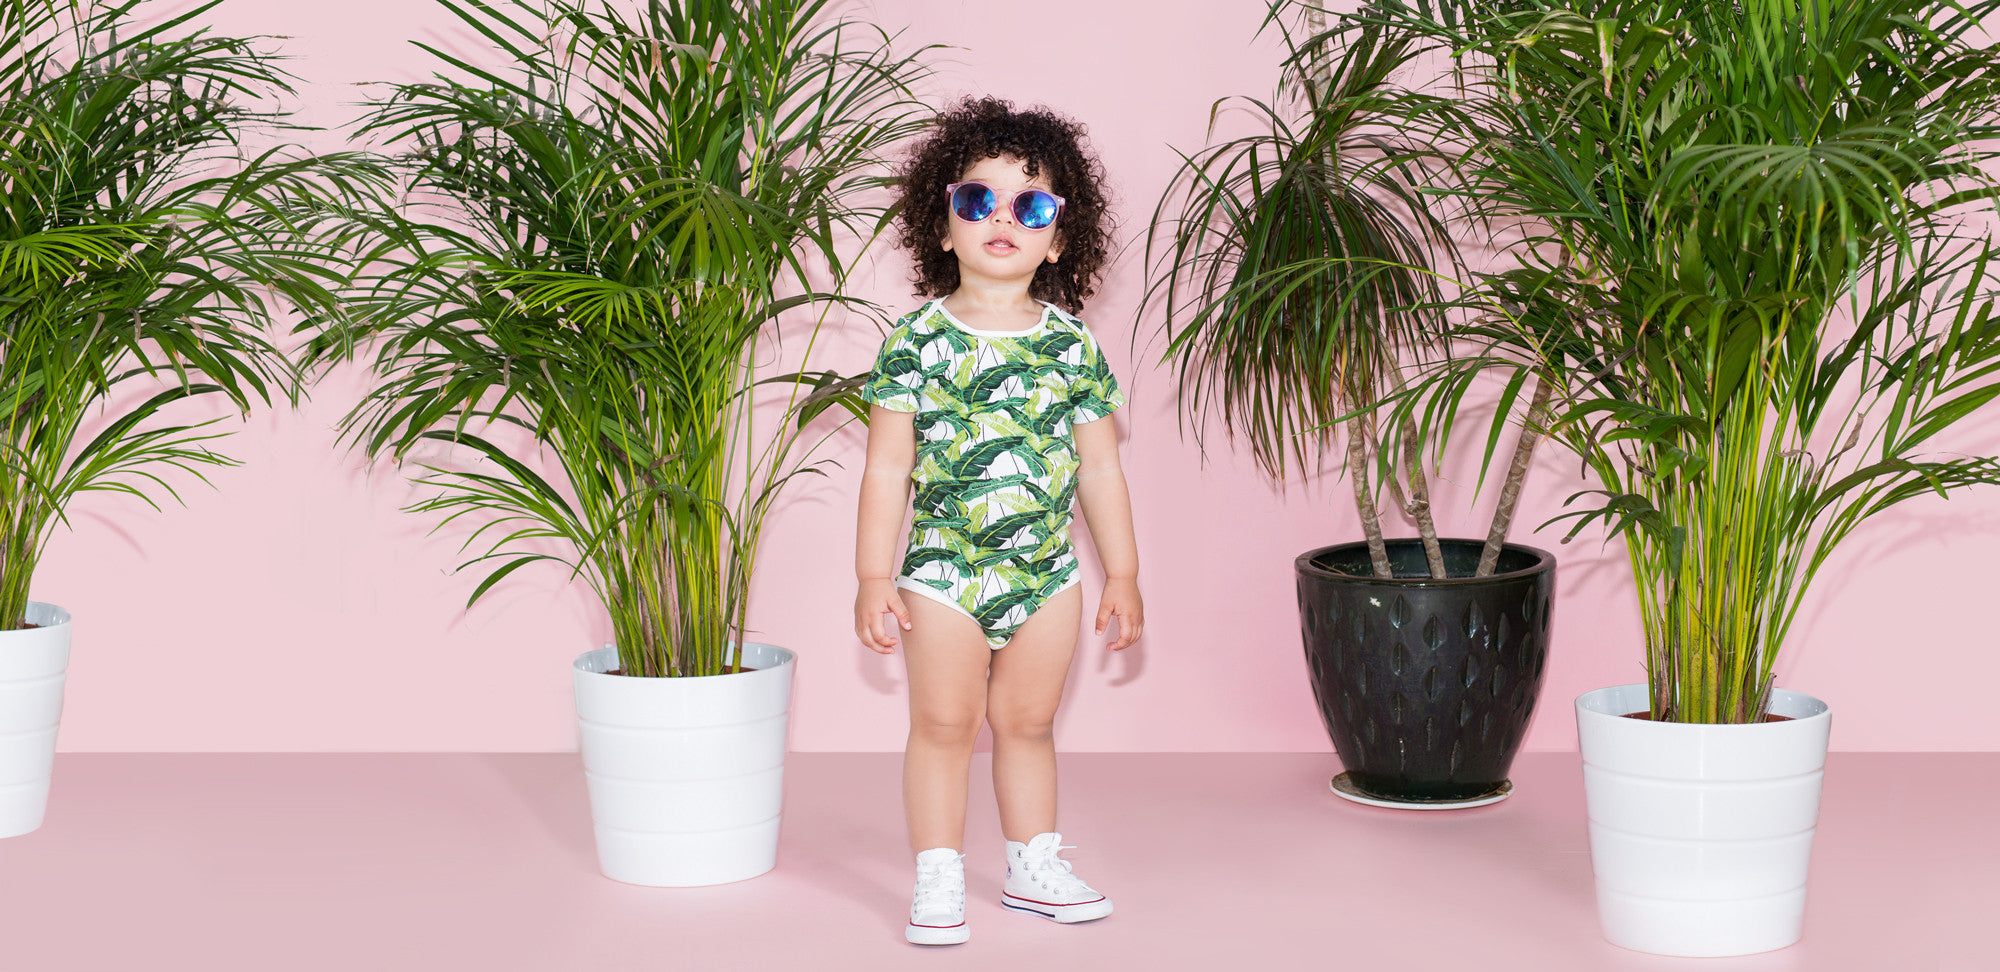 baby-clothes-cool-kids-newborn-style-fashion-mom-100%-organic-cotton-GOTS-certificate-children-toddler-fashion-style-baby-gift-baby-shower-bitch-please-long-sleeve-bodysuit-sleep-no-more-babies-clothing-baby-romper